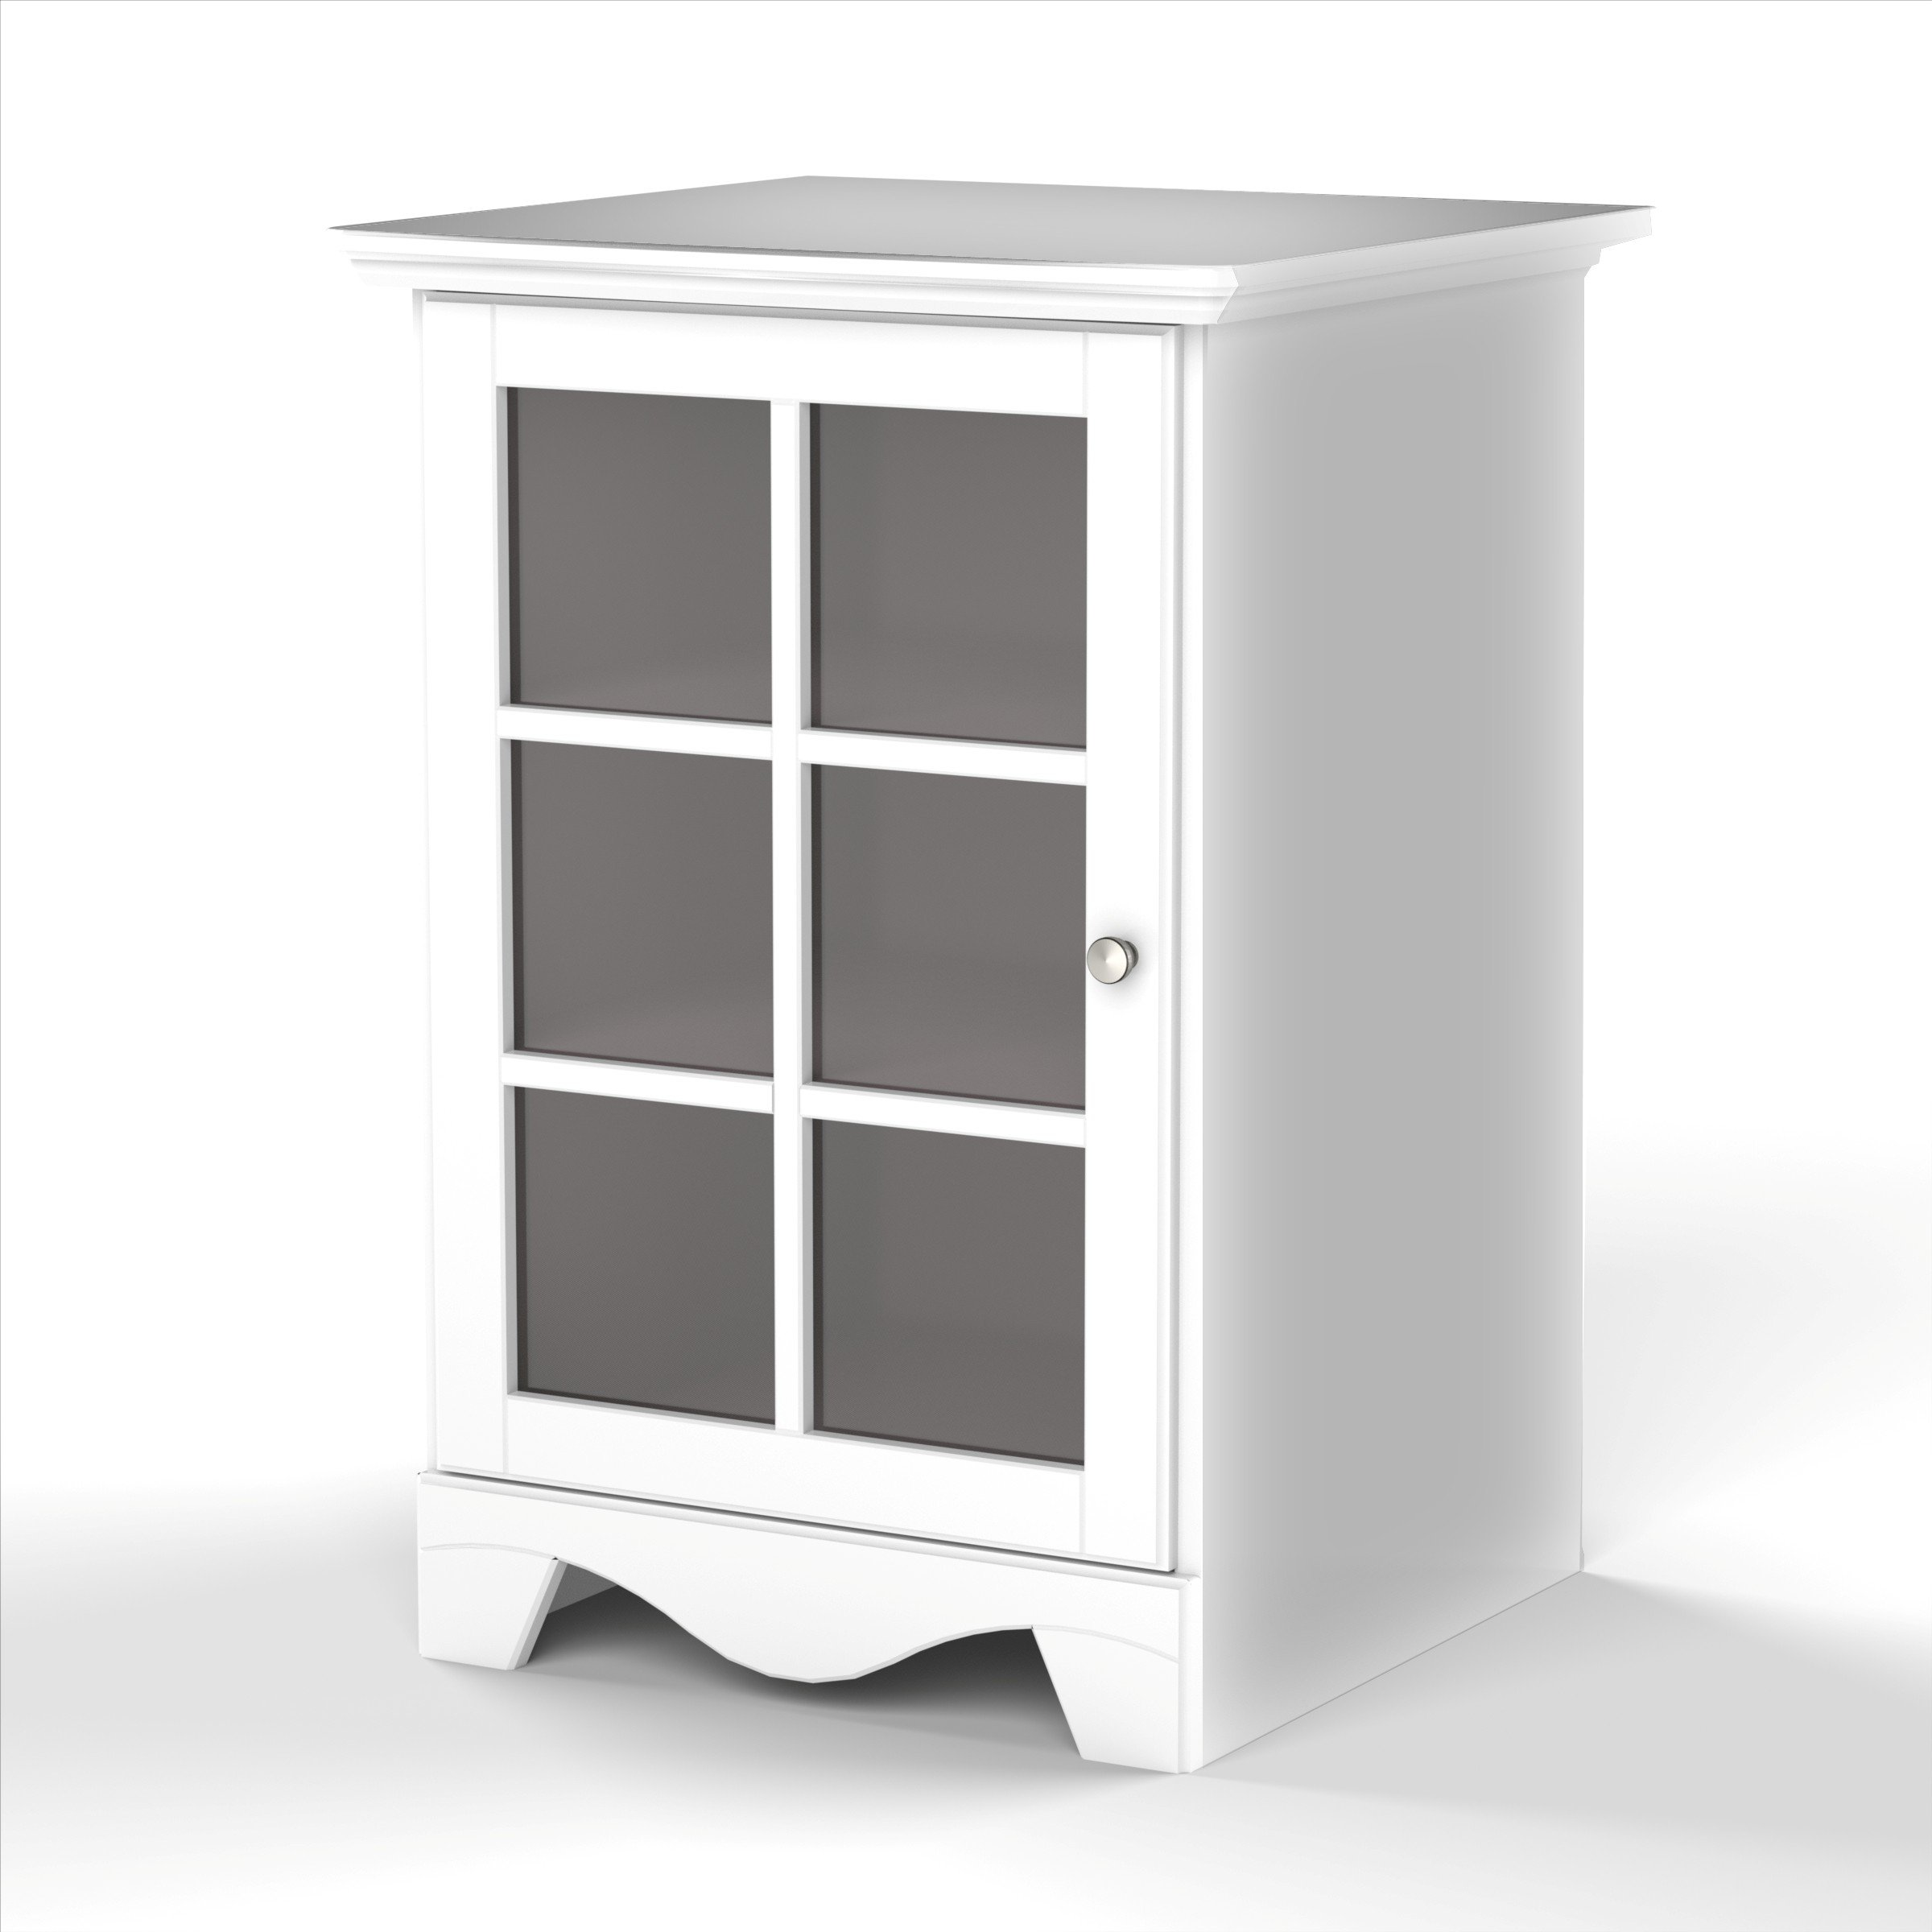 Pinnacle 1-Door Audio Tower 101503 from Nexera - White by Nexera